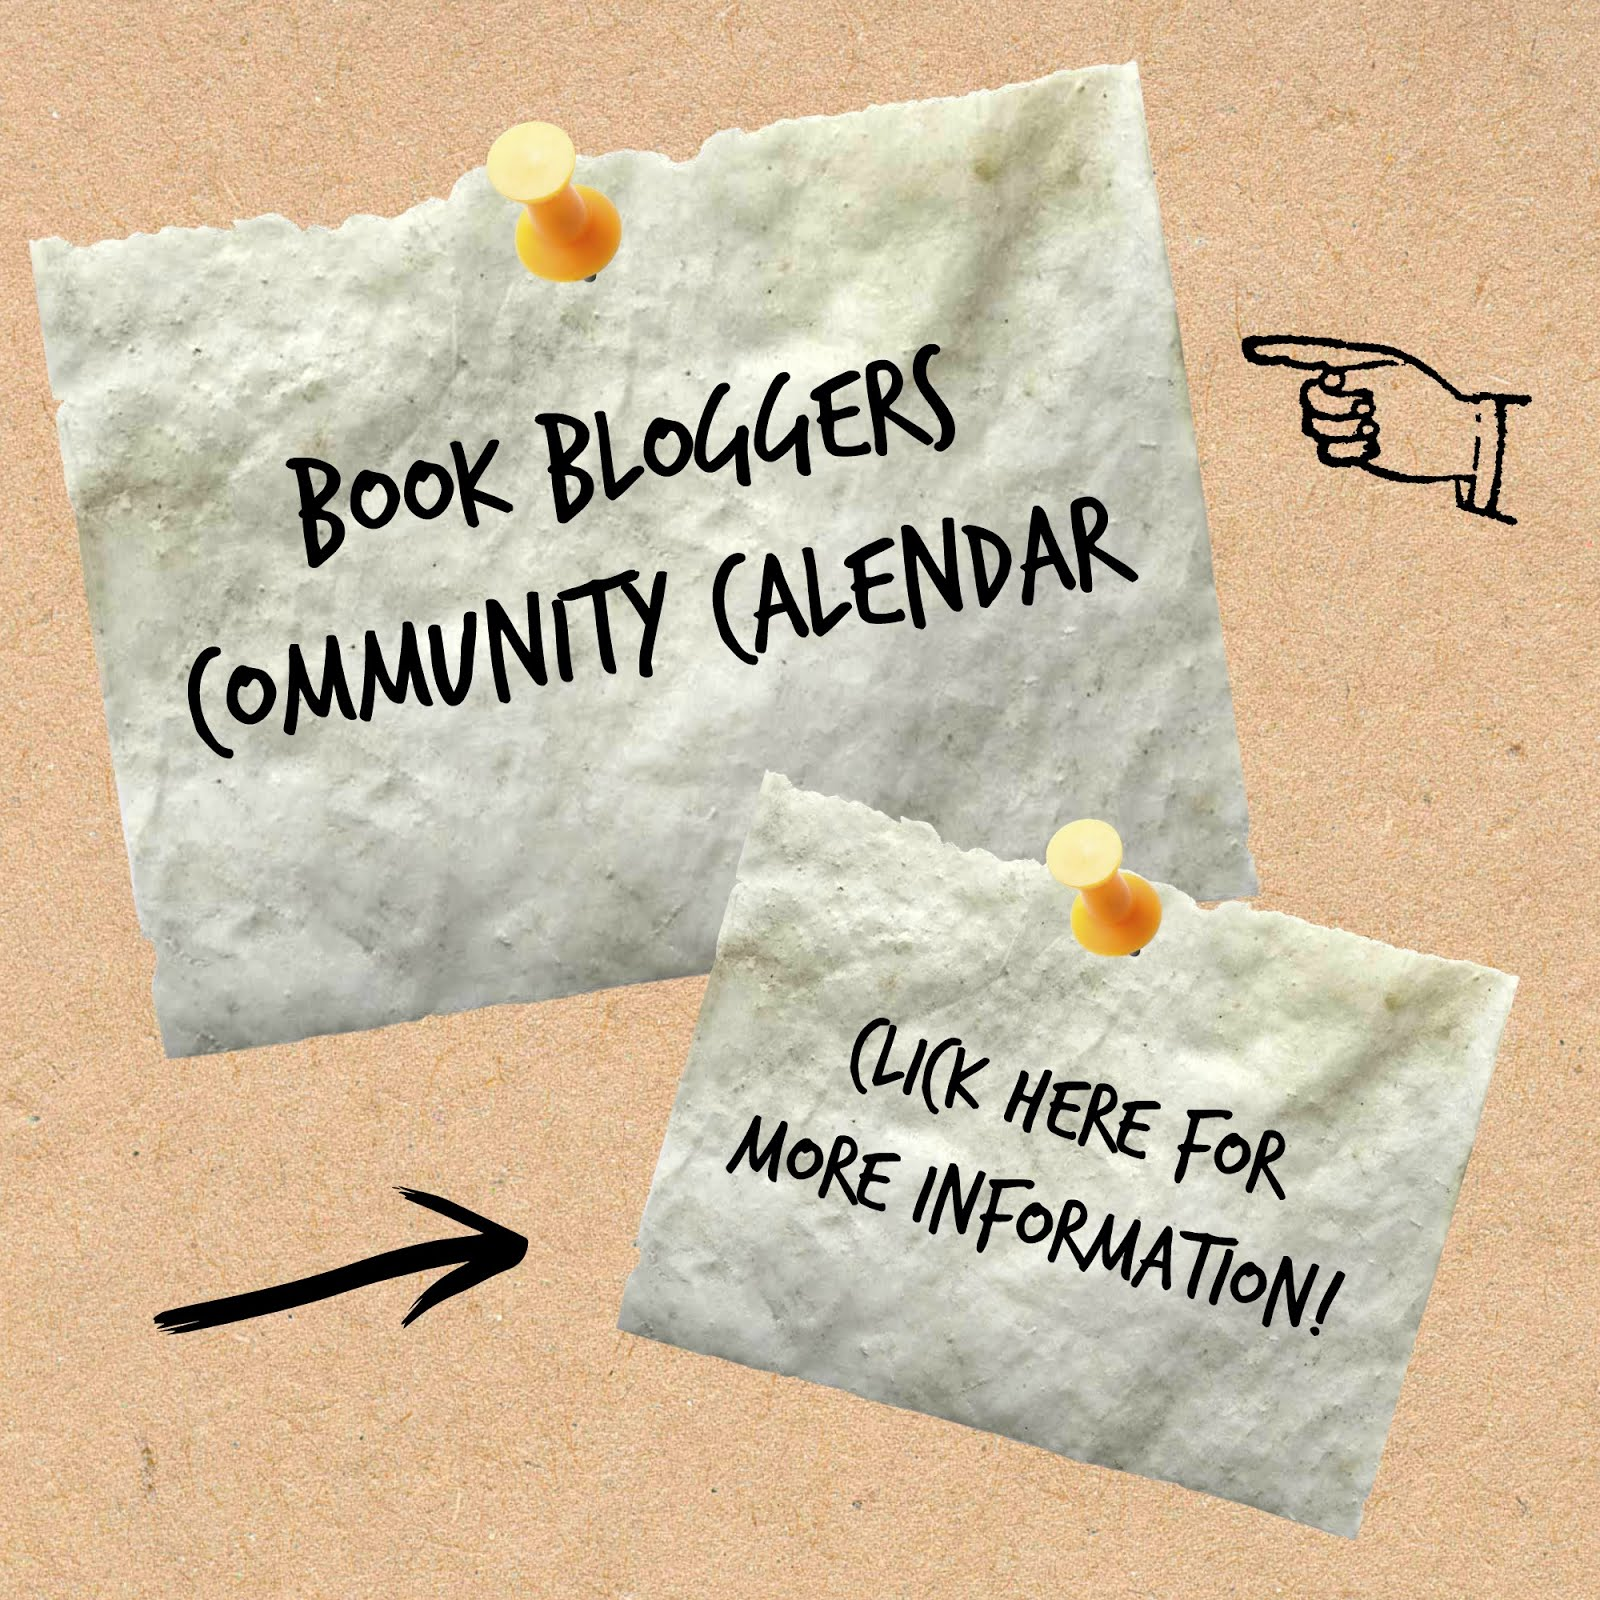 Get Involved in the Book Blogging Community